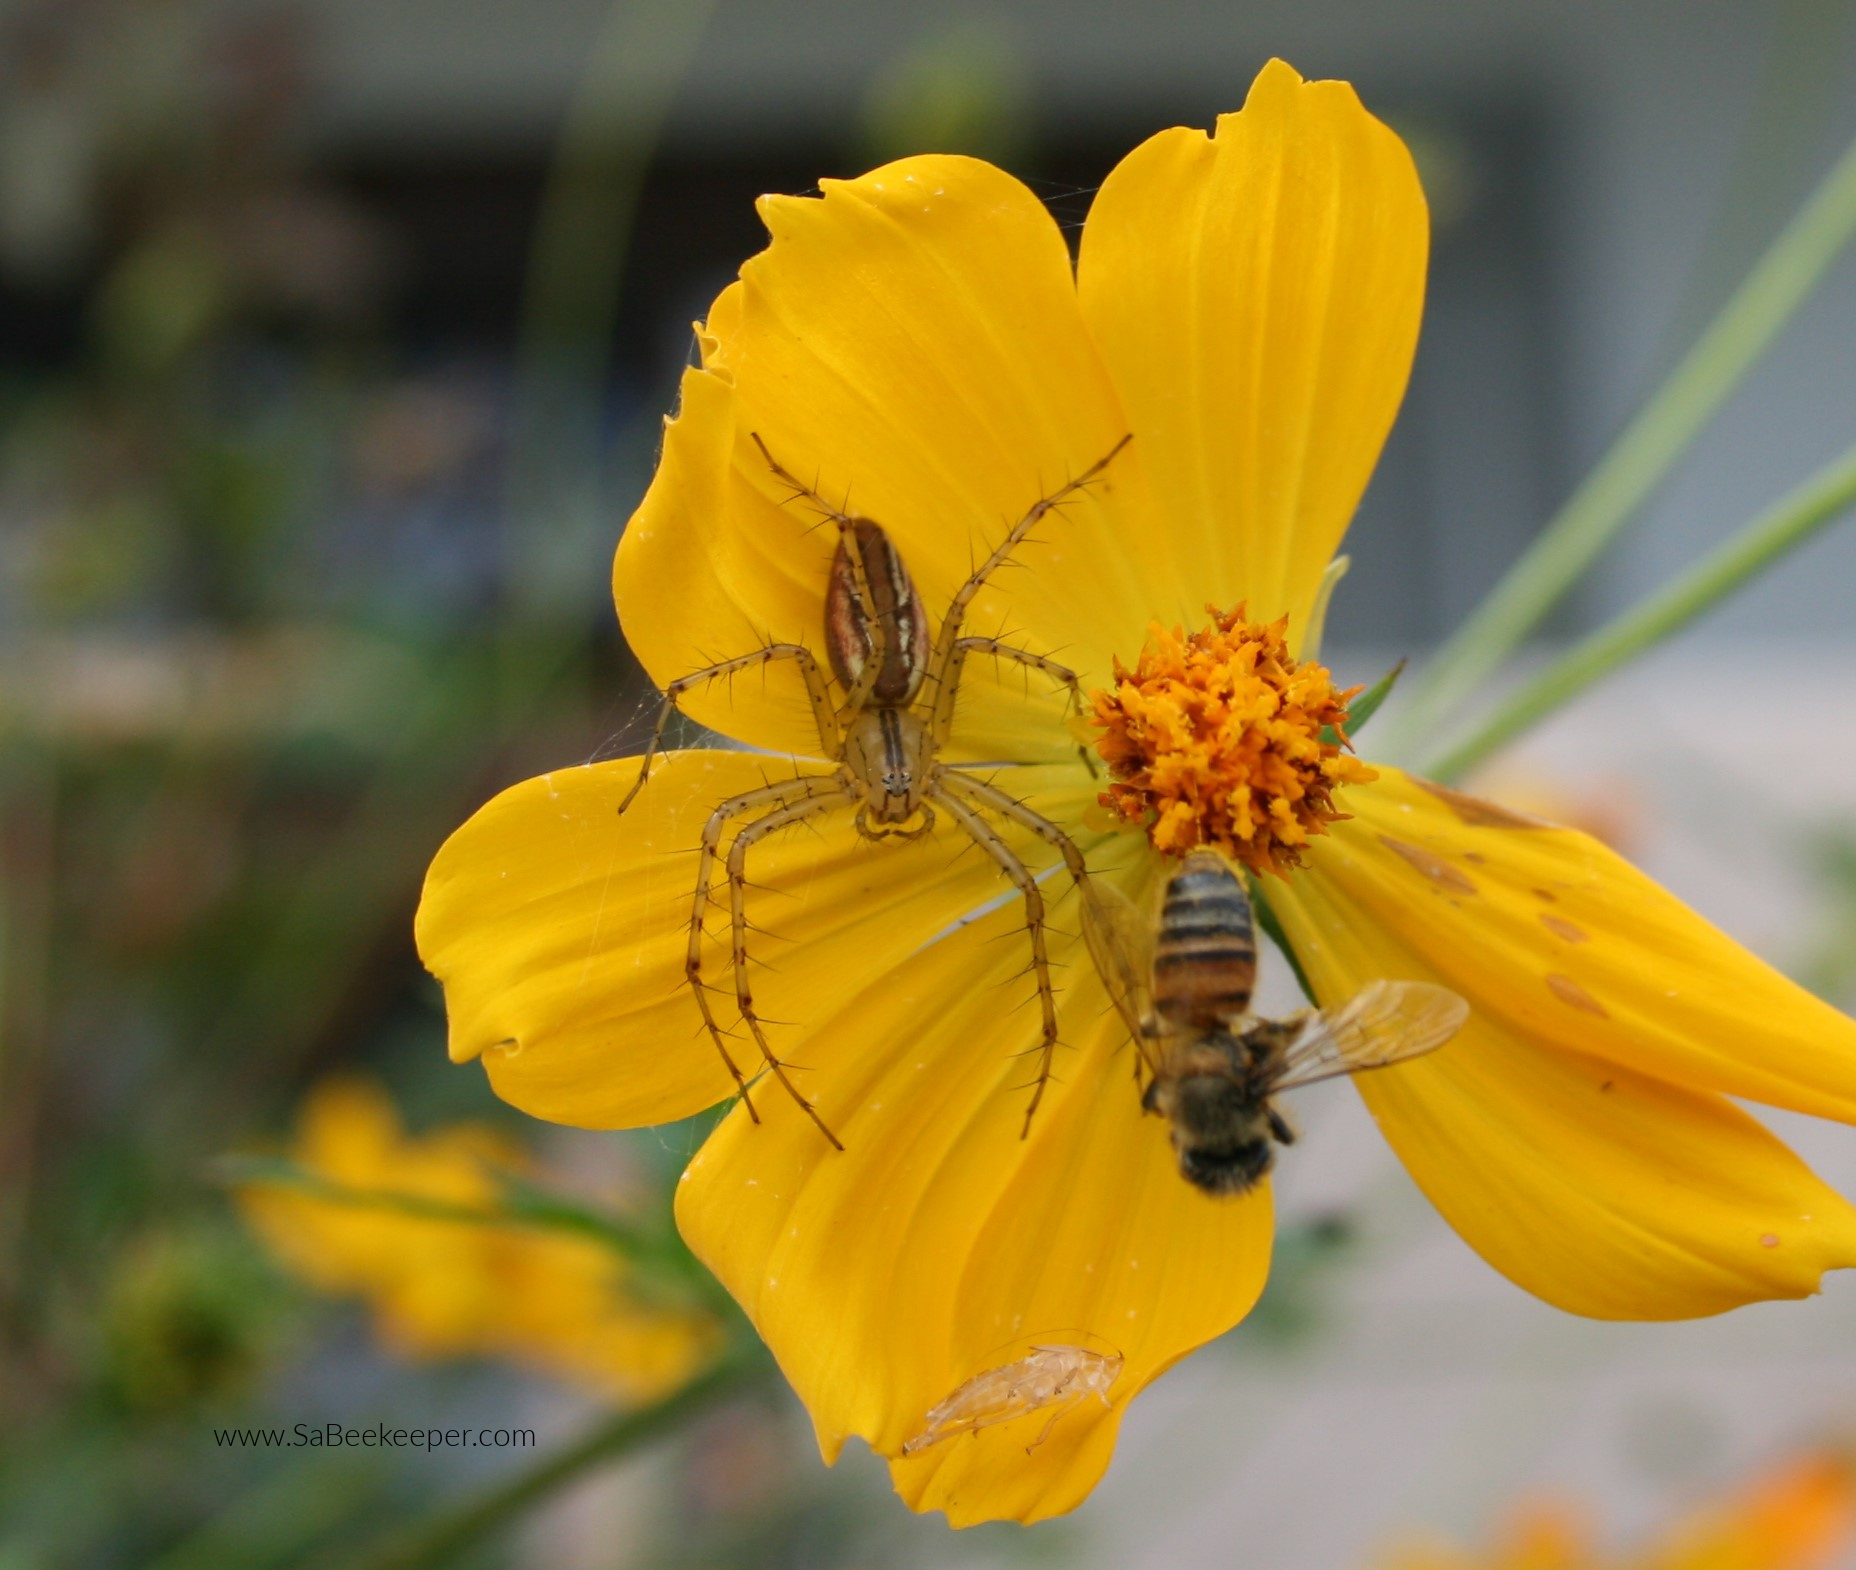 a spider on the petals of a yellow cosmos flower that has caught a honey bee and immobilized it.